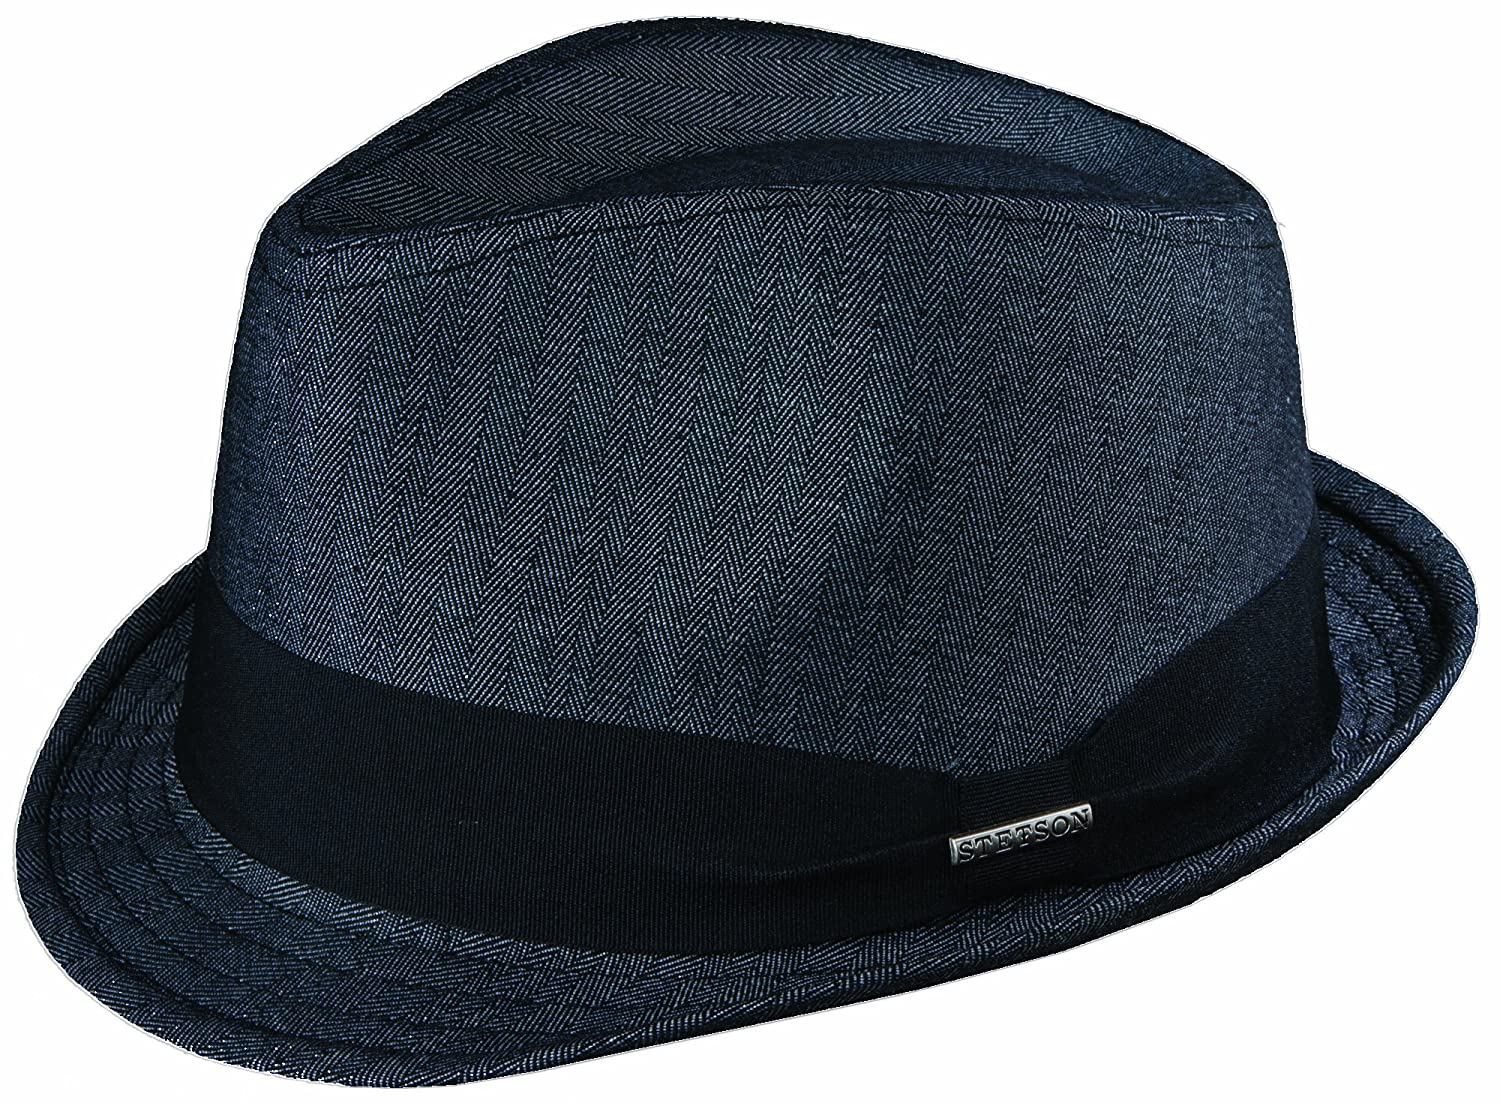 3f8d9f69ce STETSON HERRINGBONE FEDORA WITH STETSON JACQUARD LINNING (L ...